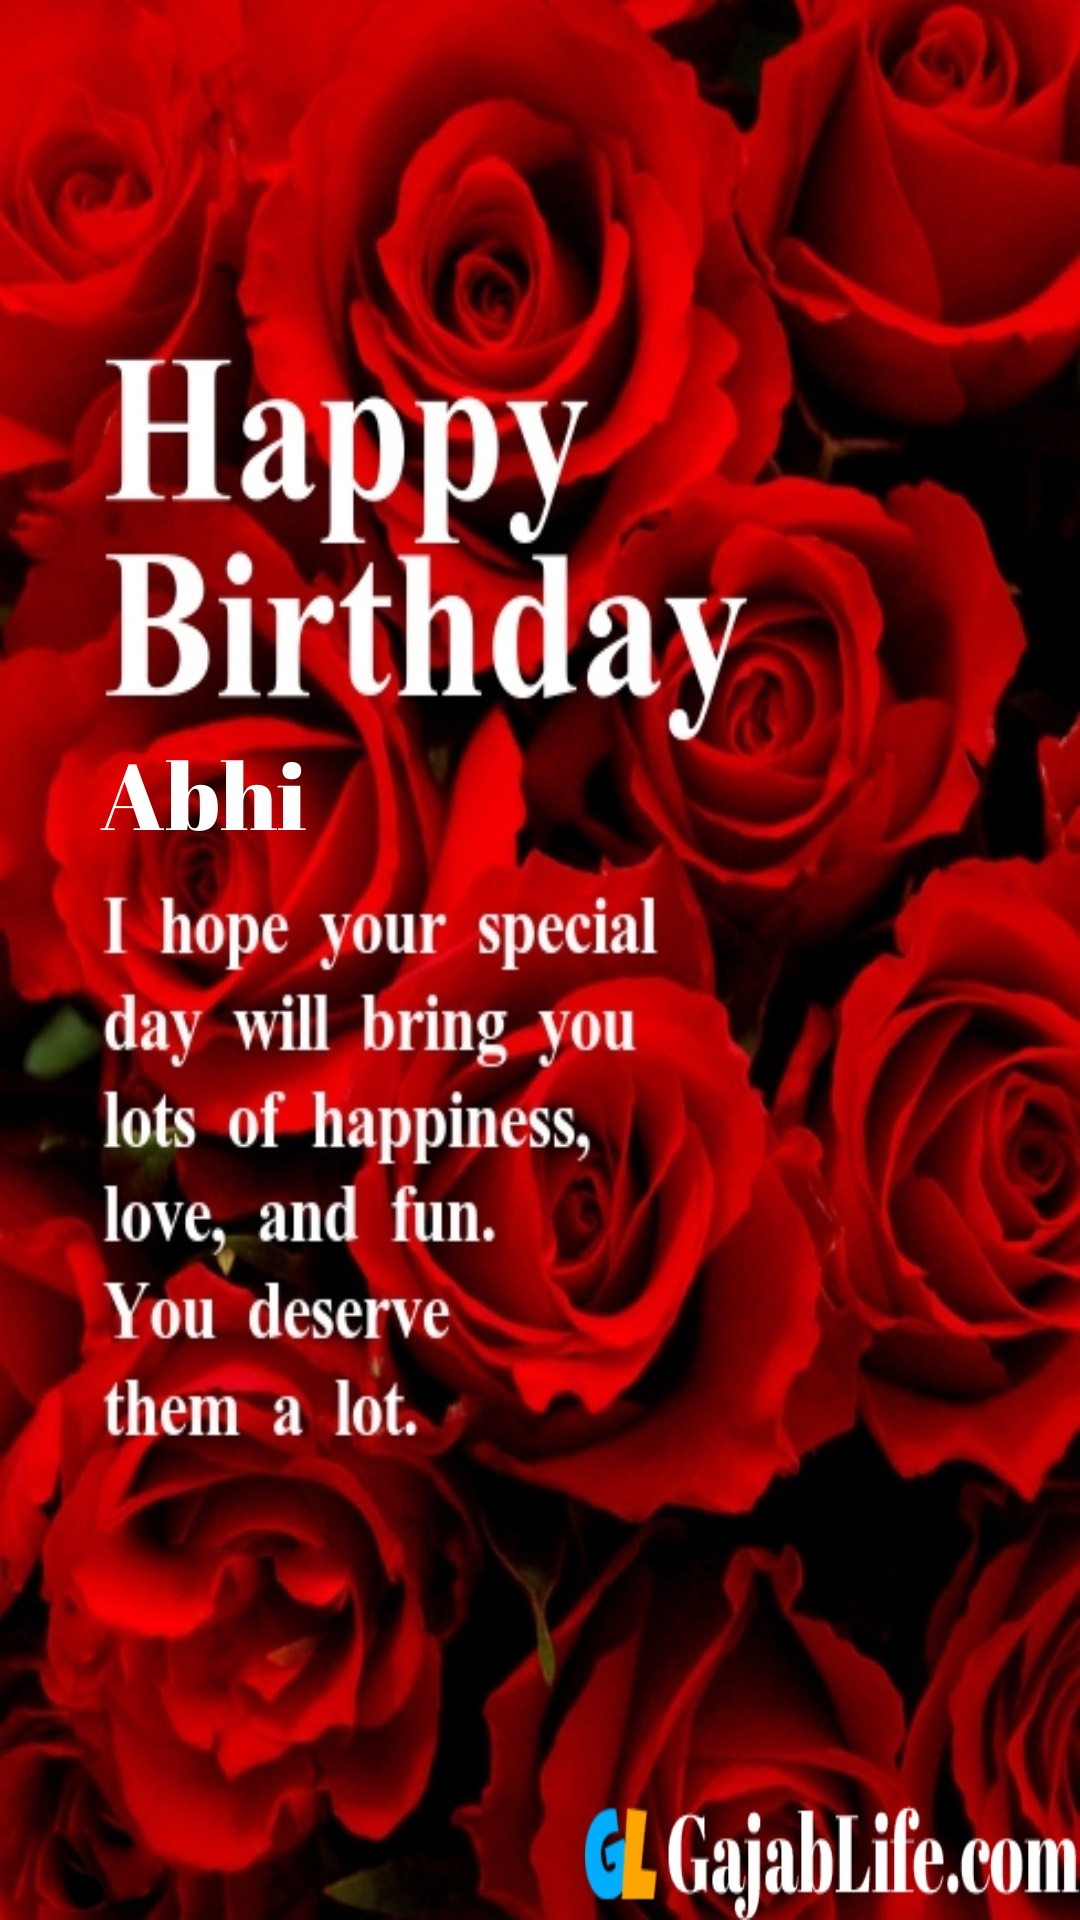 Abhi birthday greeting card with rose & love